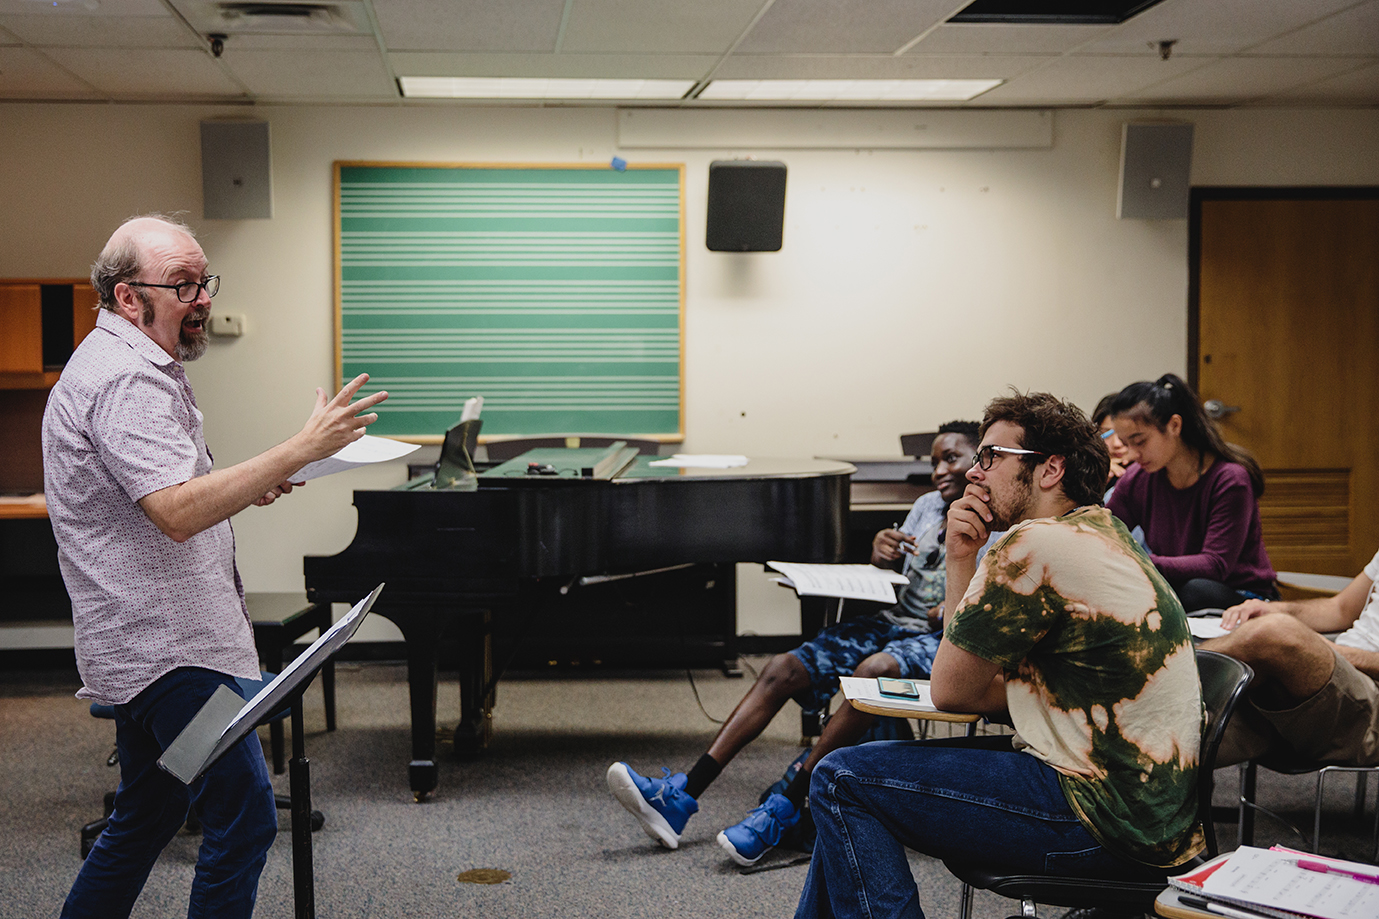 Professor of music lectures to students